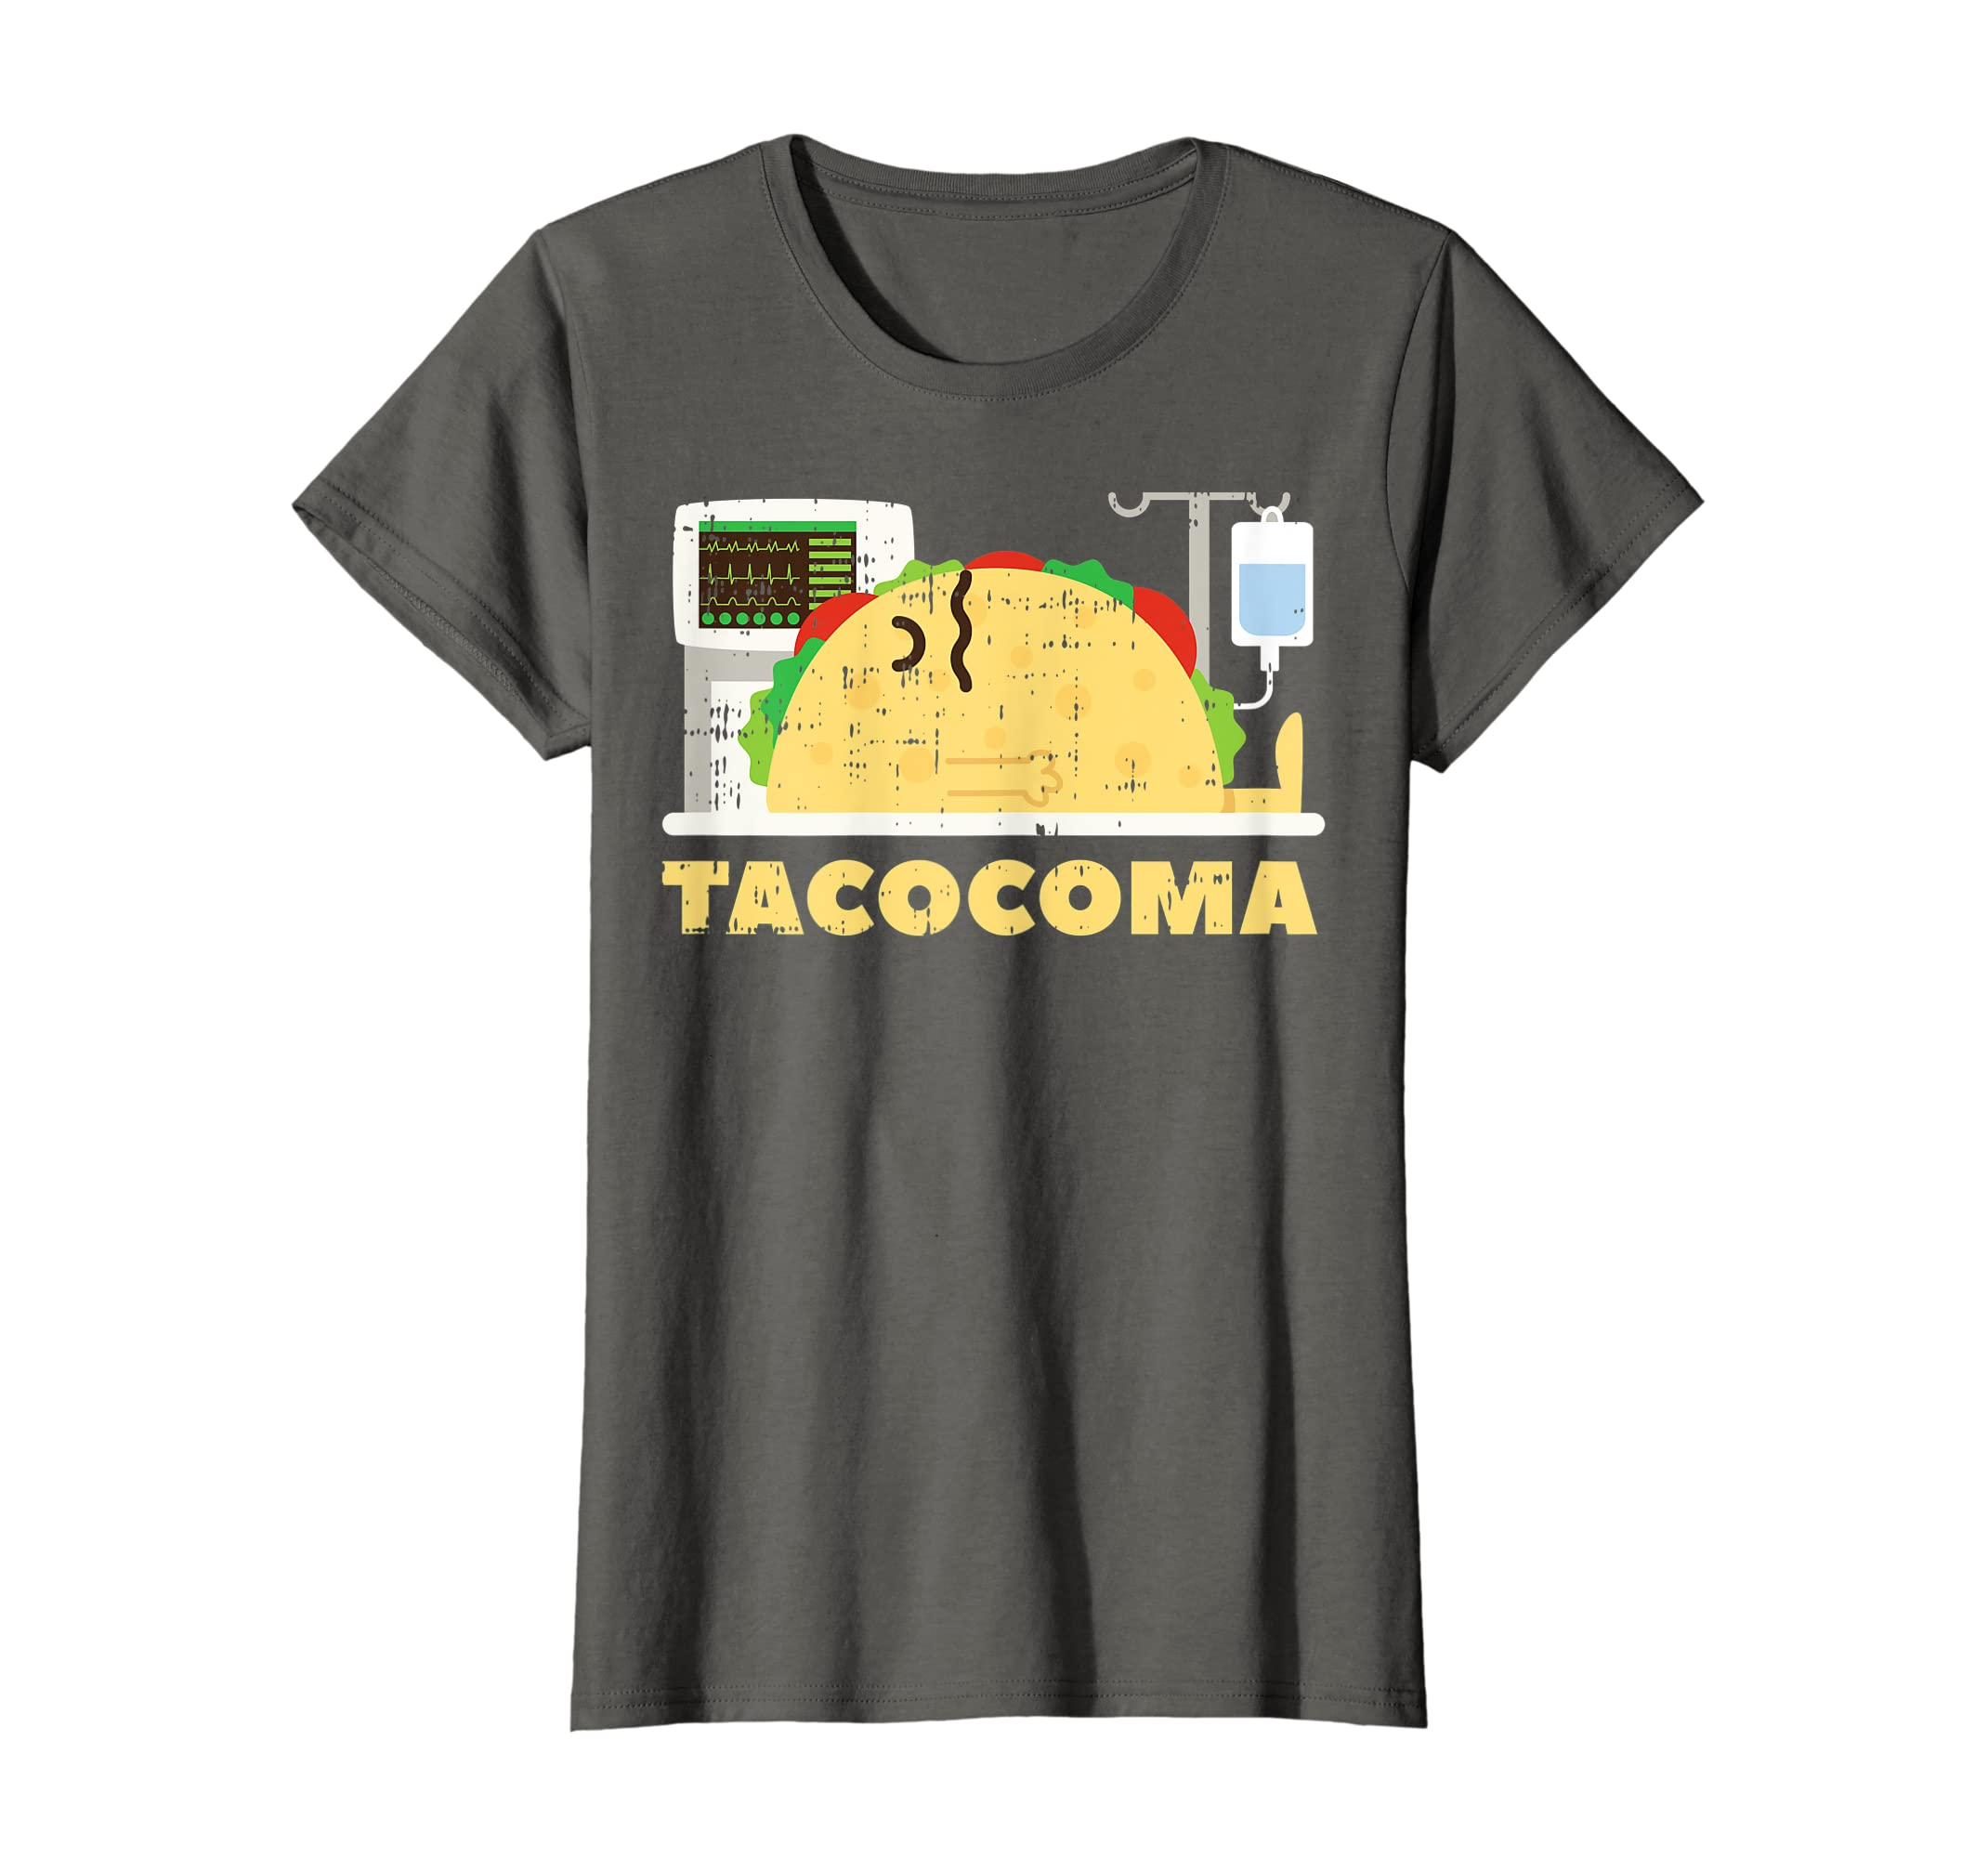 38d33a81b Amazon.com: Tacocoma Taco Coma Funny Mexican Cinco De Mayo Shirt T-Shirt:  Clothing